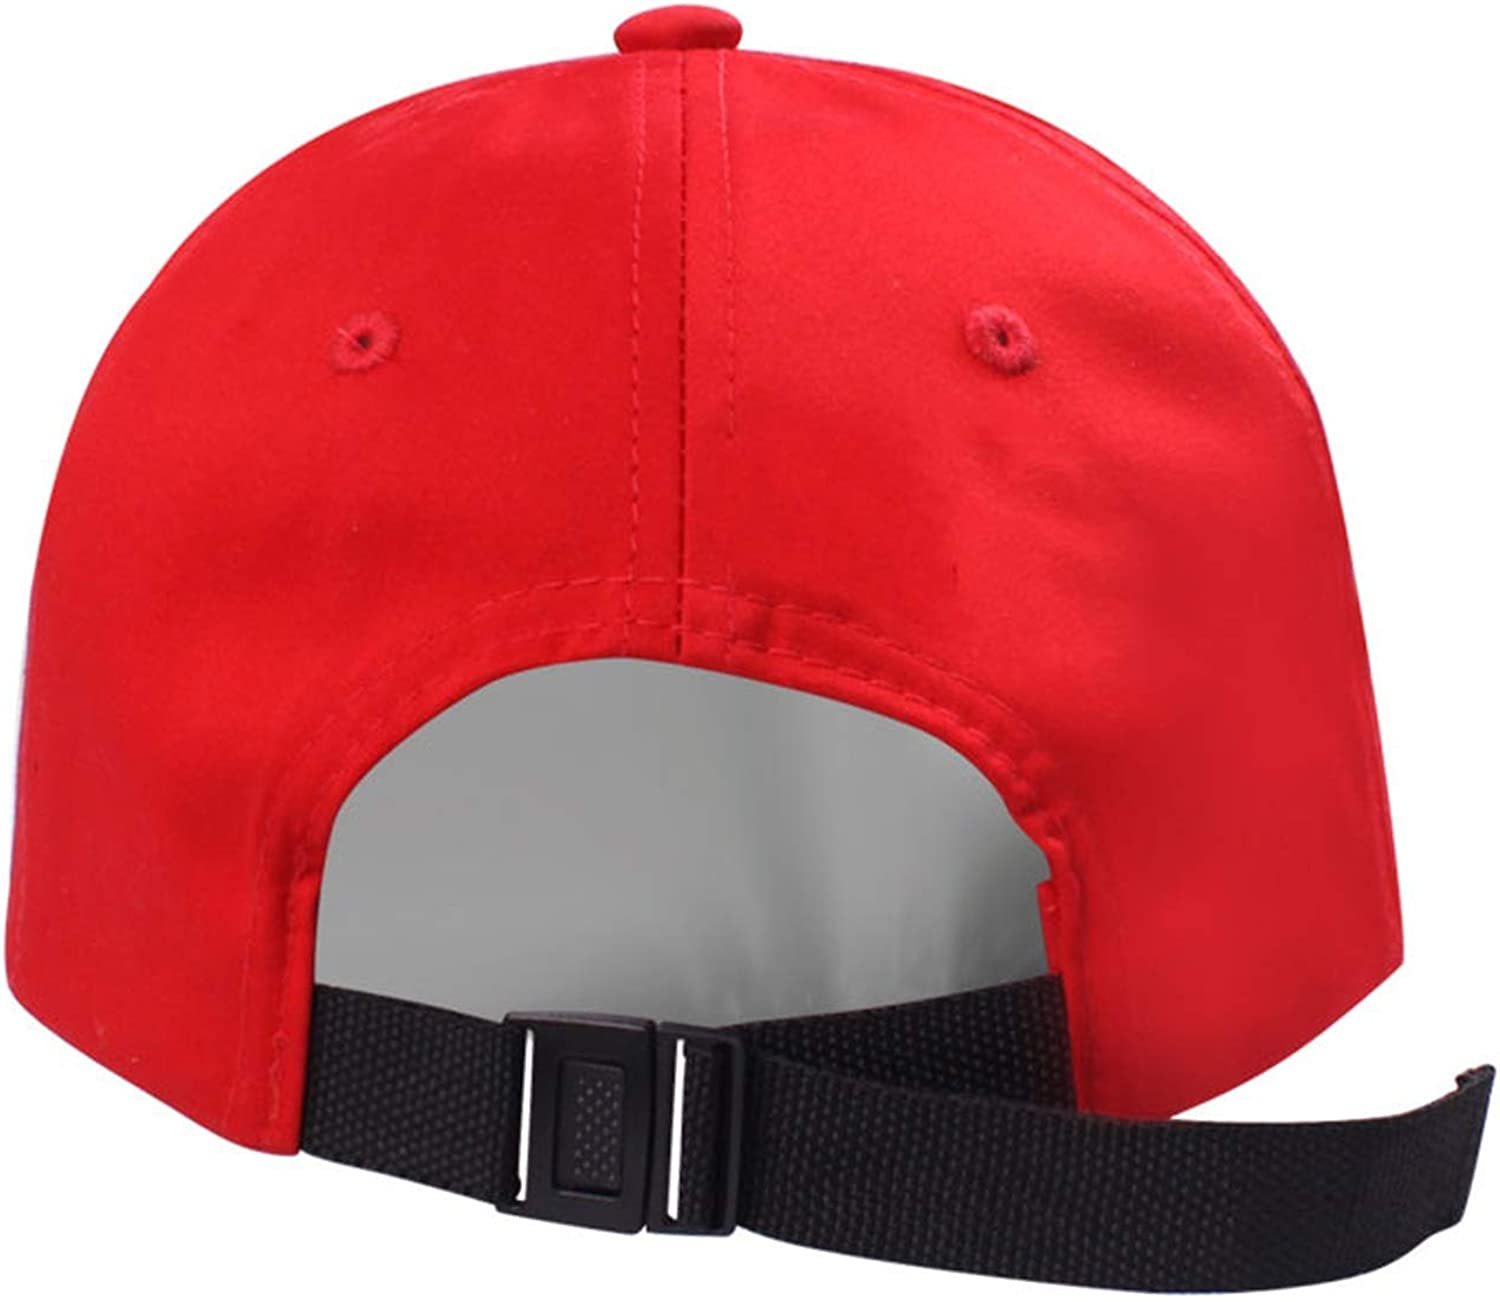 Spring New Unisex Cotton Red Baseball Cap Embroidery Letters Caps Baseball Hat Adjustable